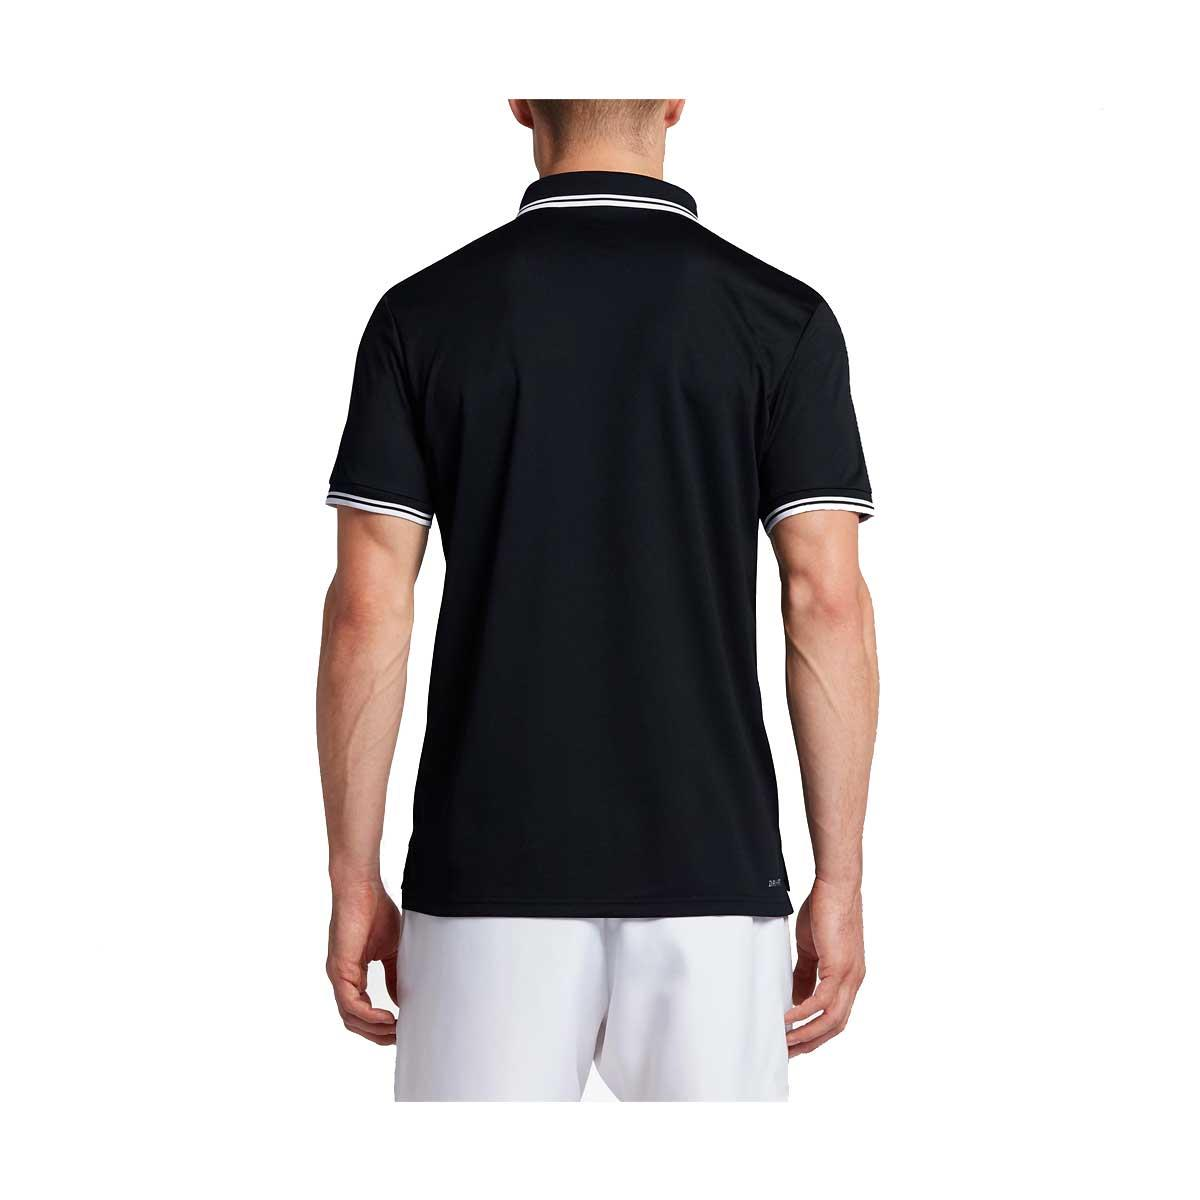 f0b1634b1 Camisa Polo Nike Court Dry Solid Masculino